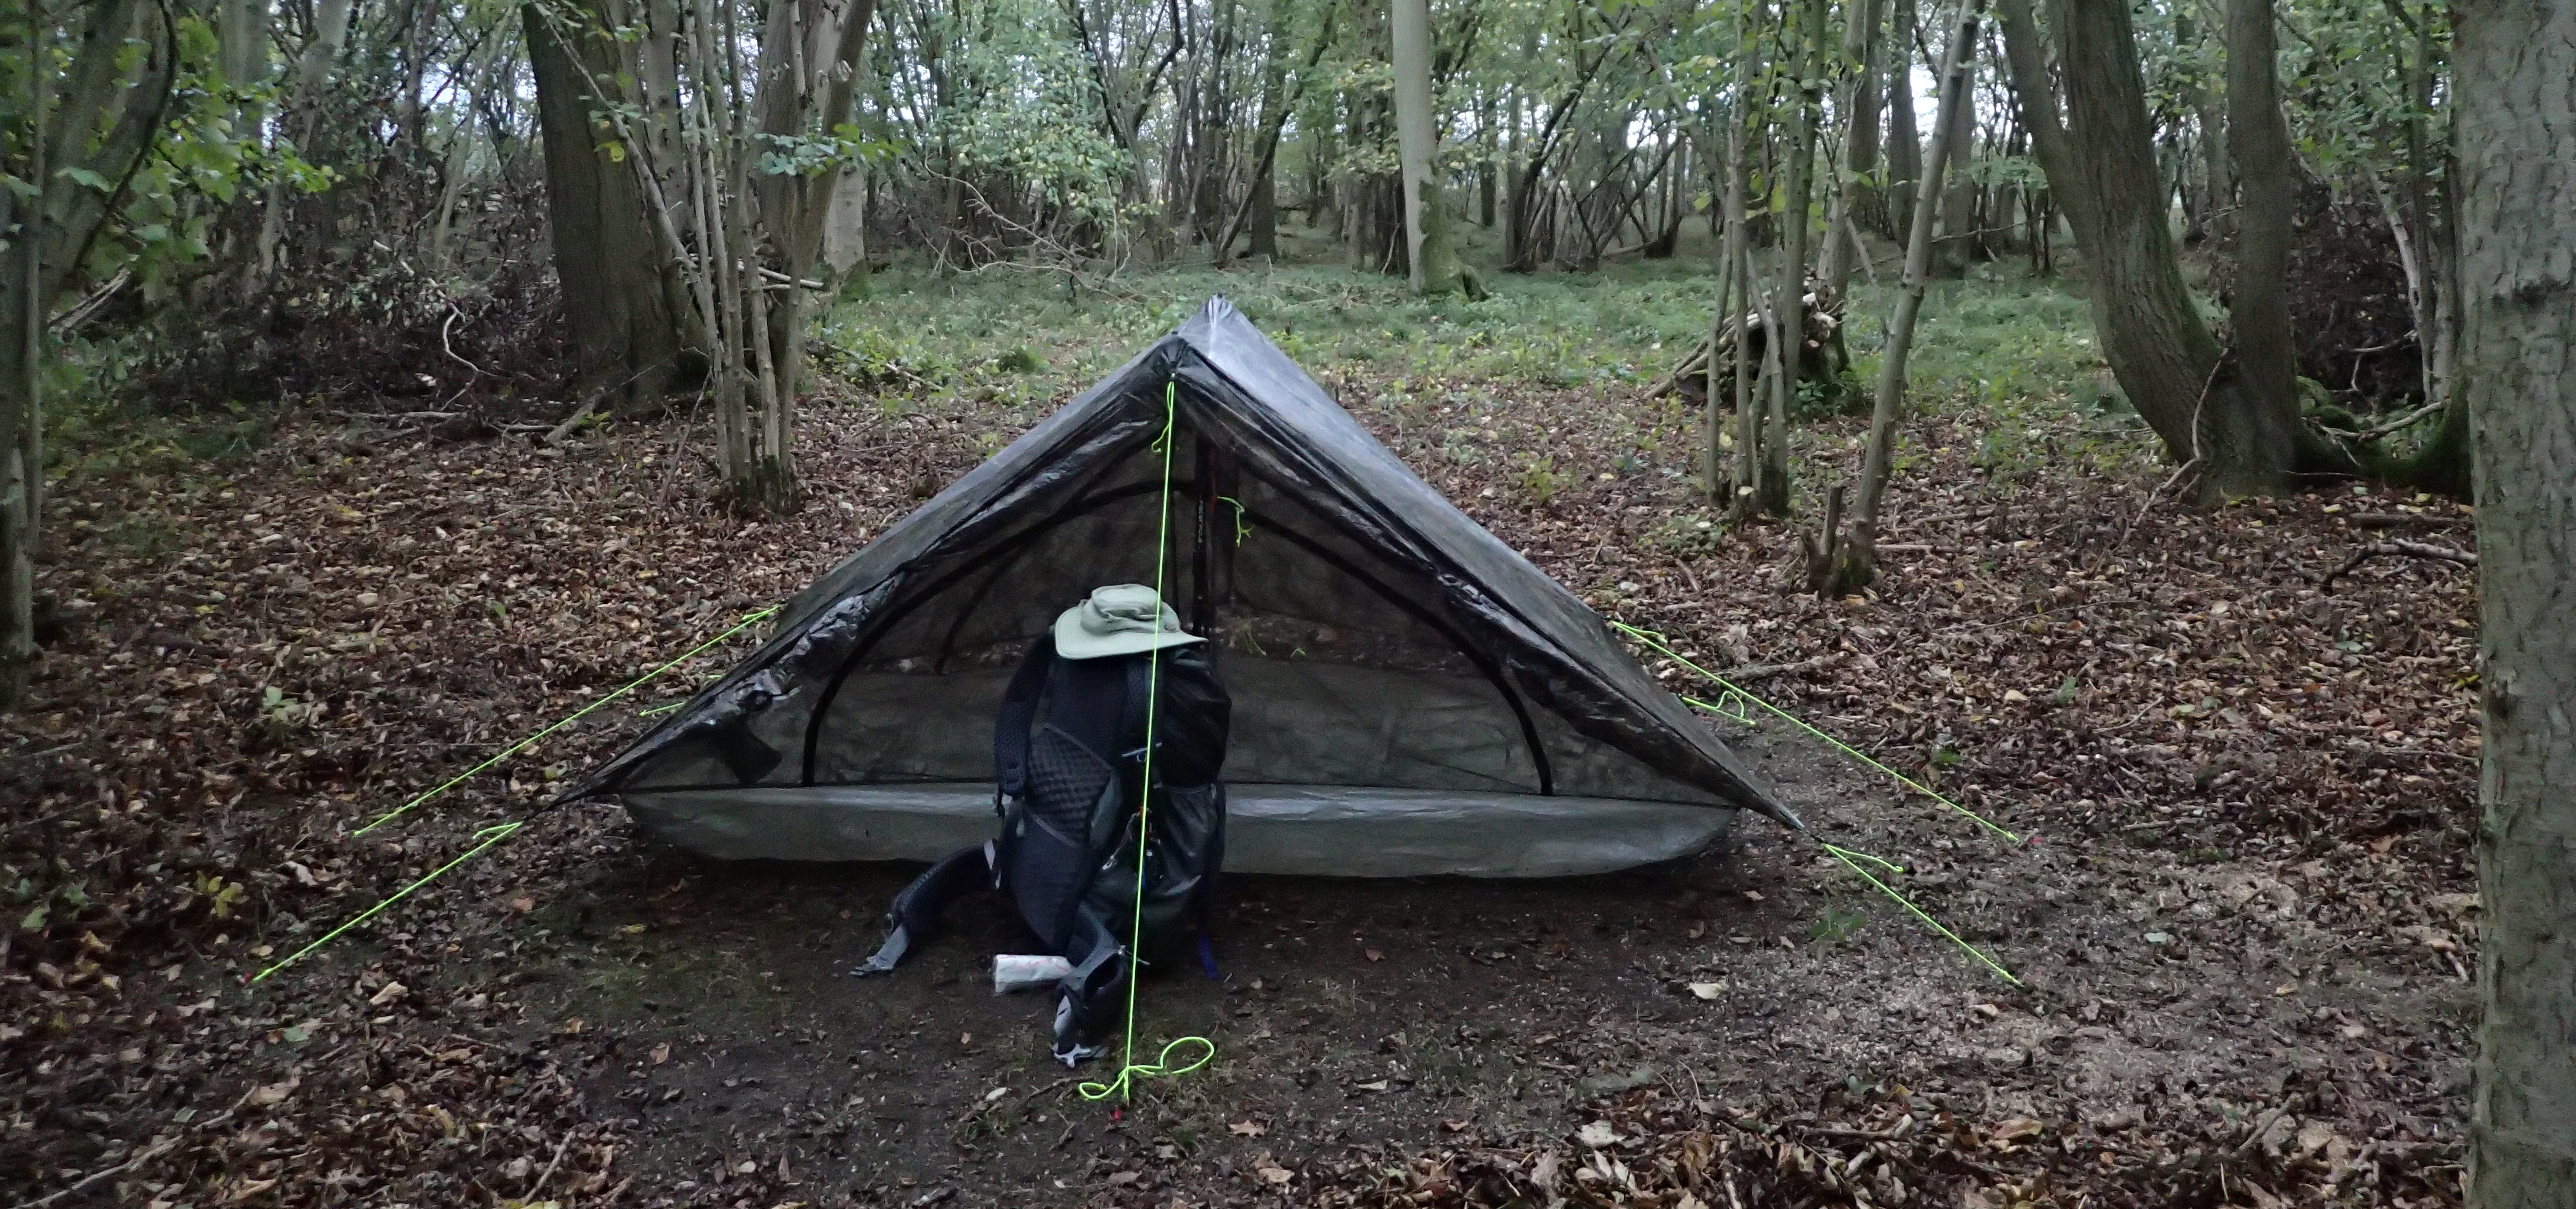 Surreptitious wildcamp with Z Packs Duplex on the Icknield Way in 2017